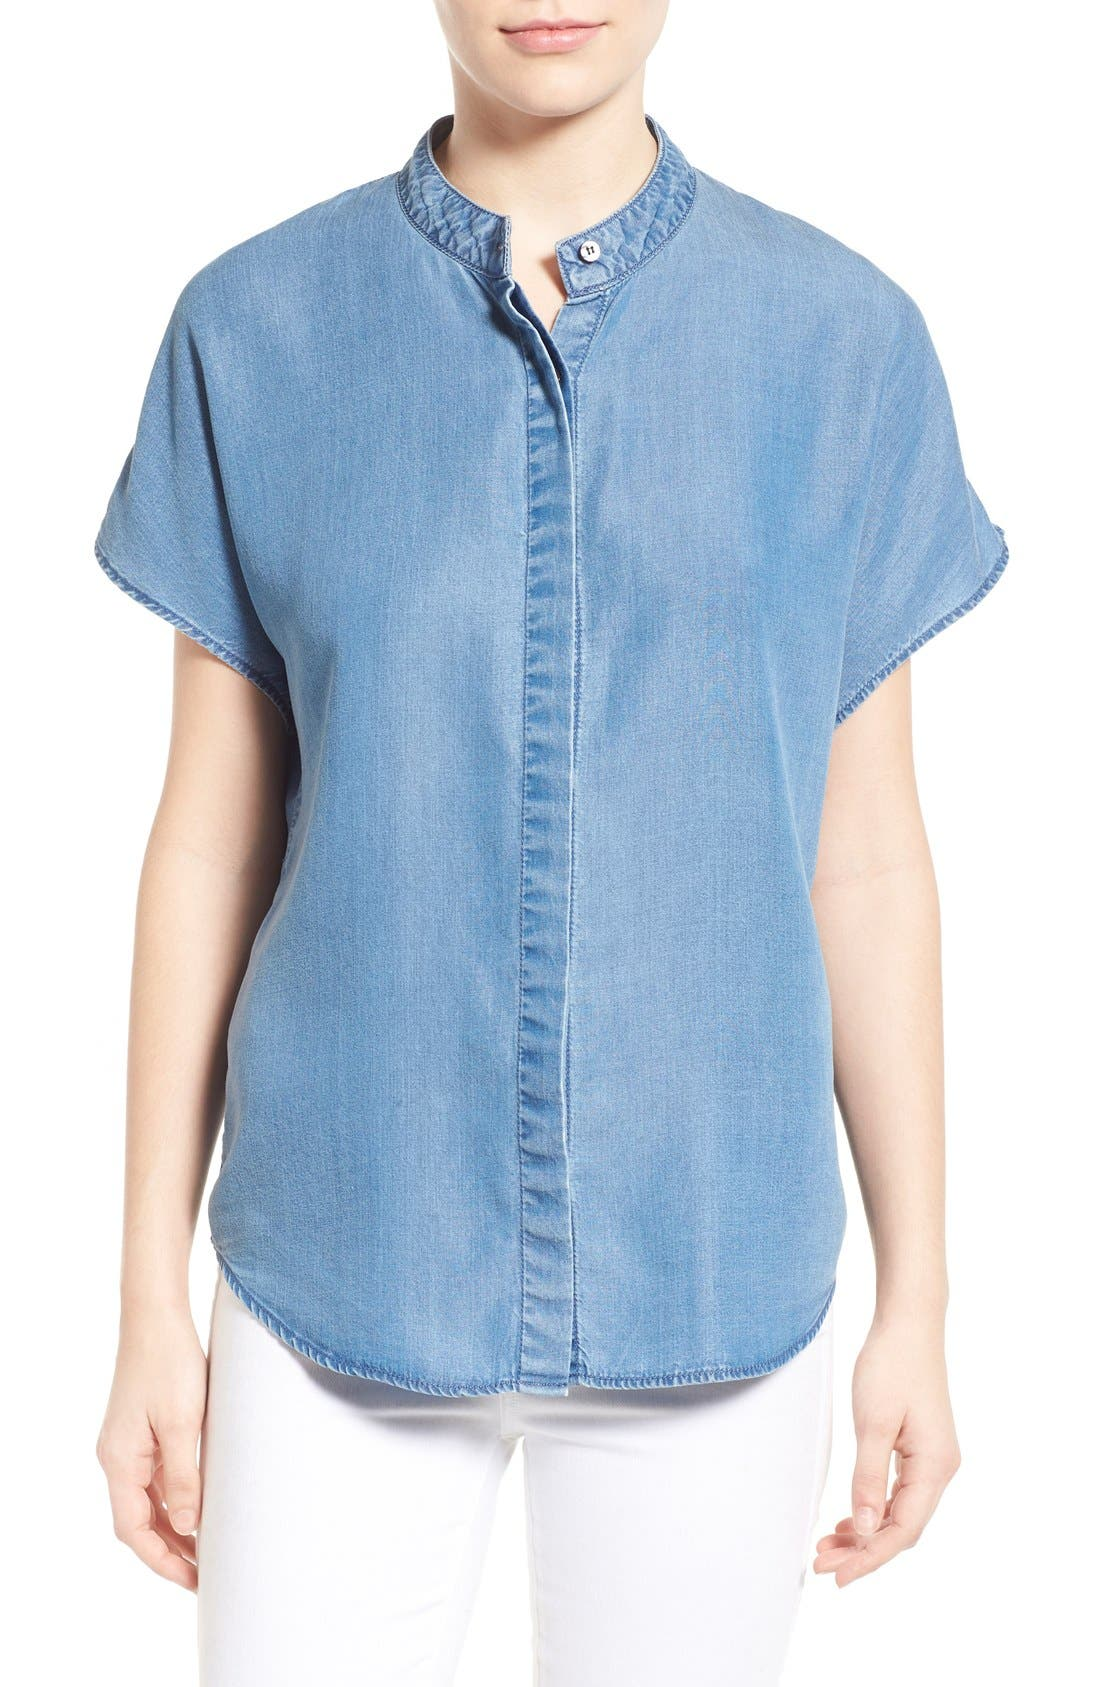 Alternate Image 1 Selected - KENDALL + KYLIE Keyhole Back Chambray Top